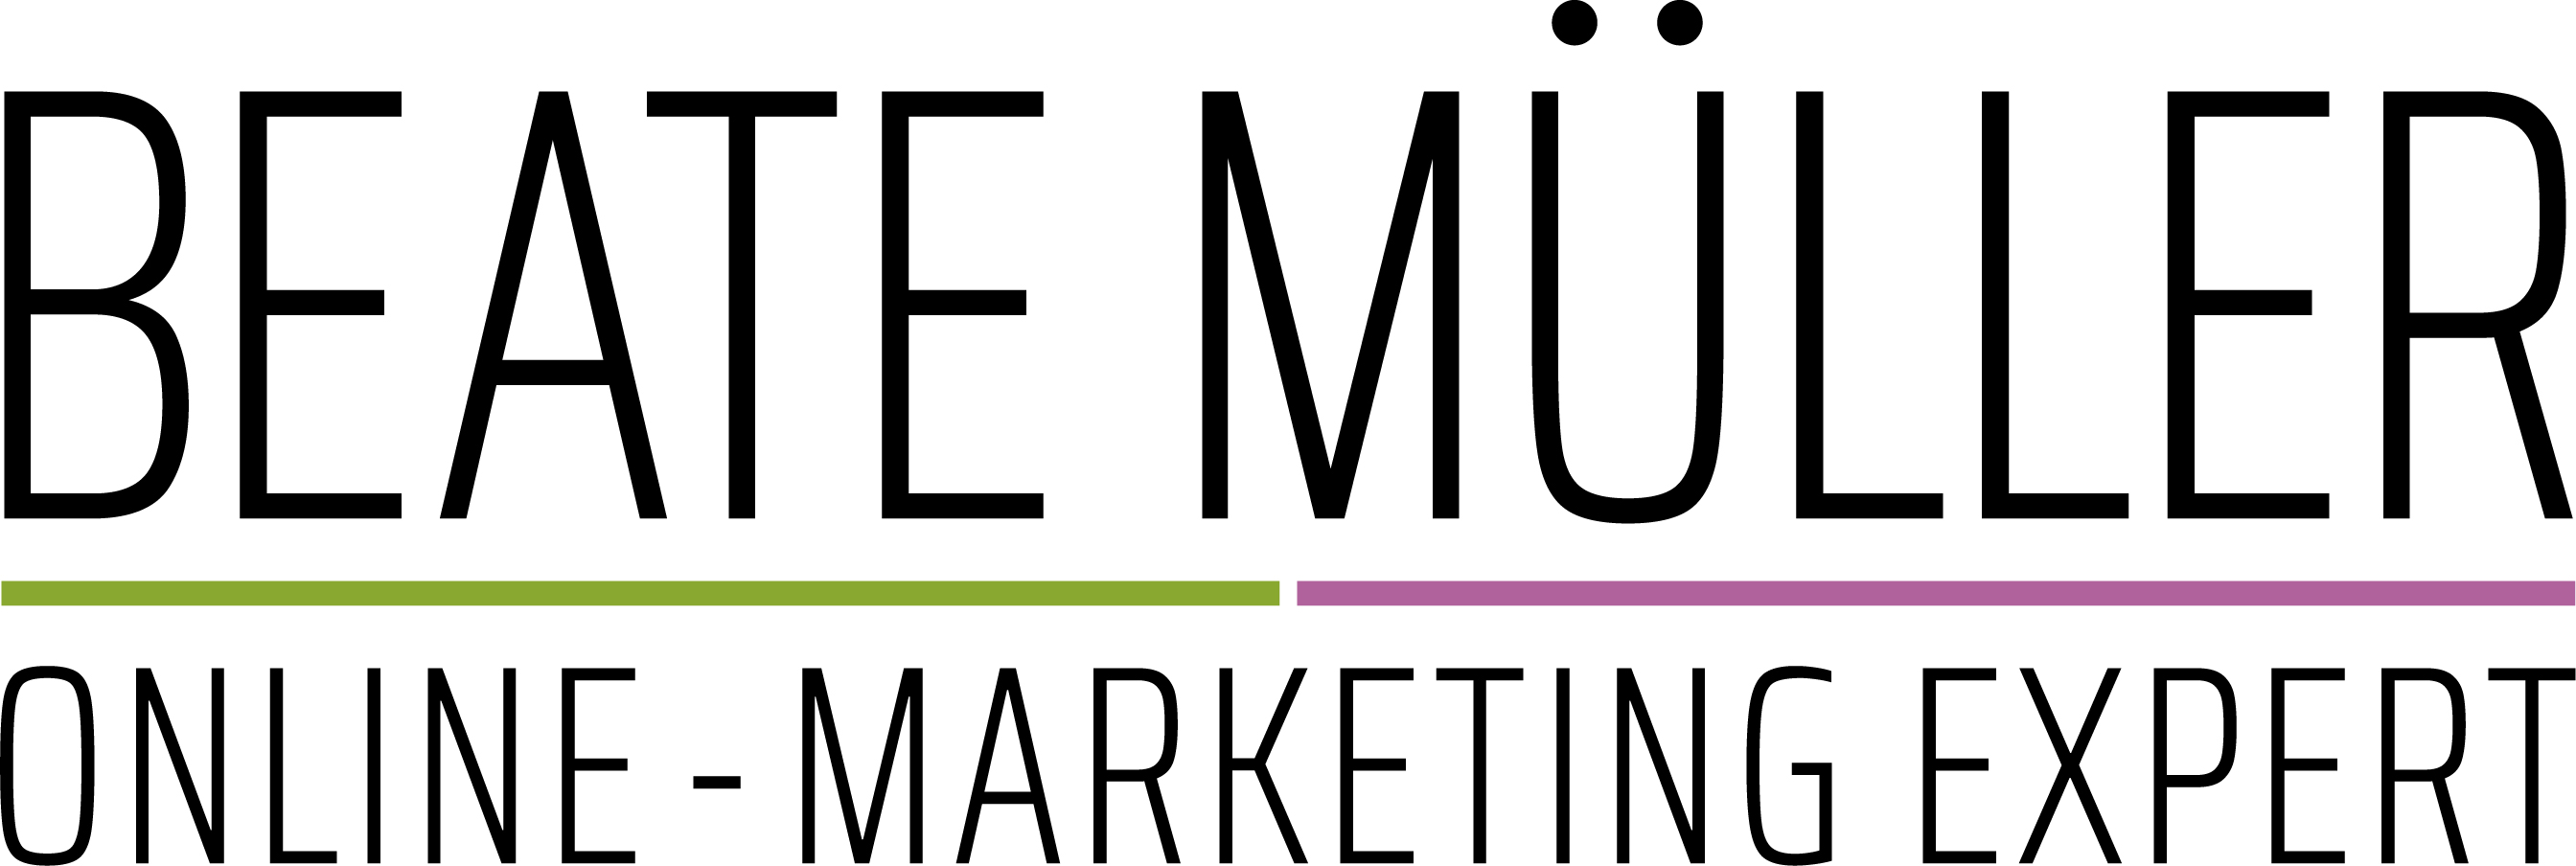 Beate Müller - Online-Marketing Expert Logo